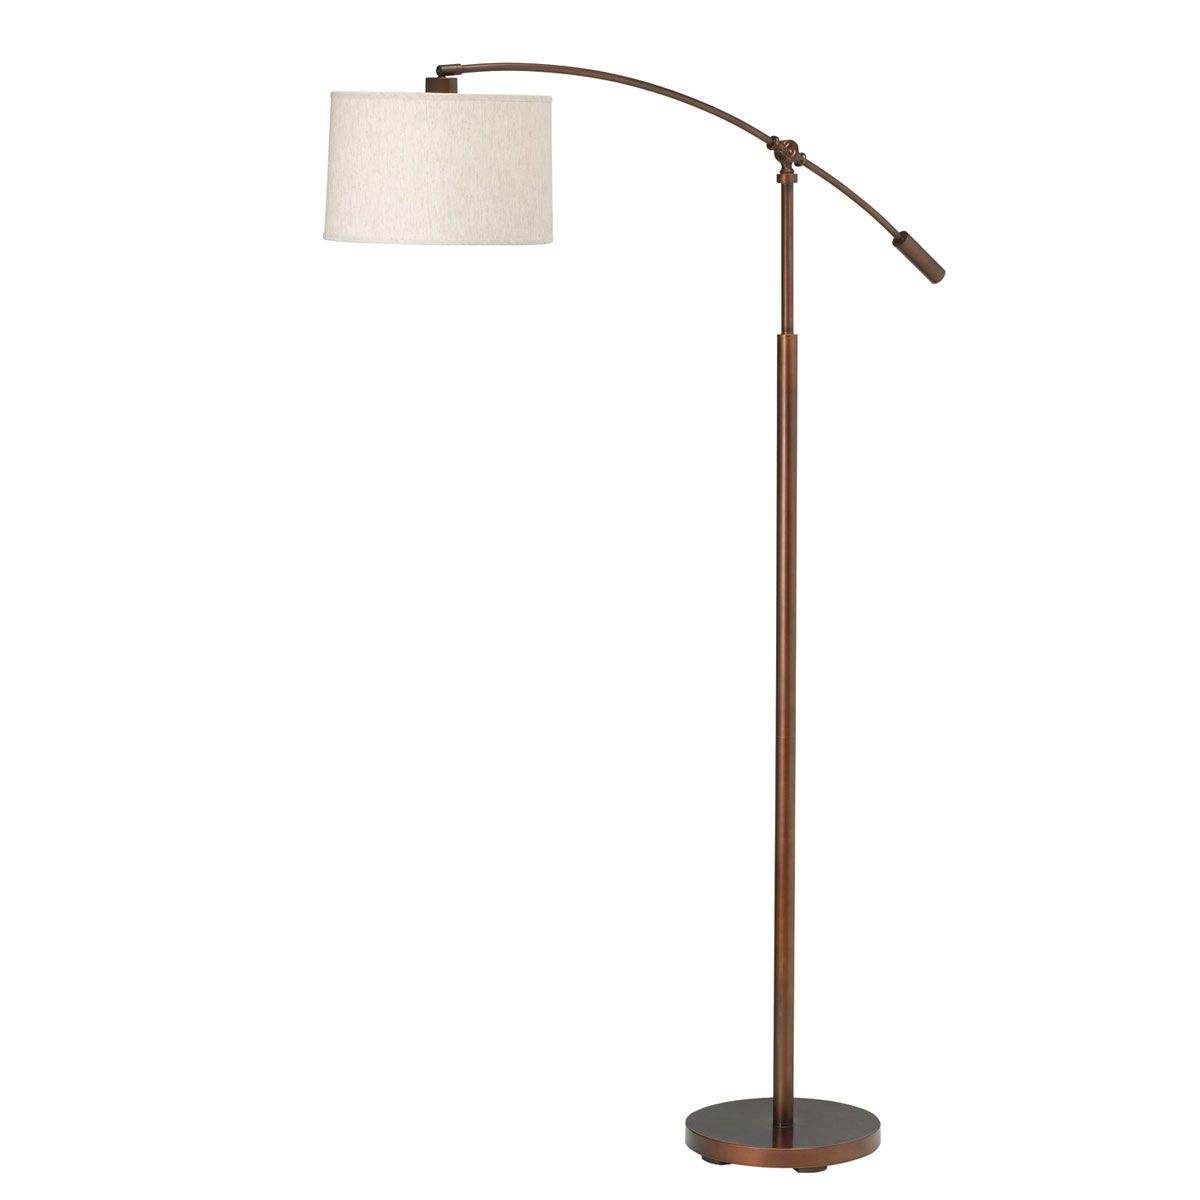 Kichler Westwood 74256 Cantilever Contemporary Floor Lamp Bronze Floor Lamp Floor Lamp Arc Floor Lamps